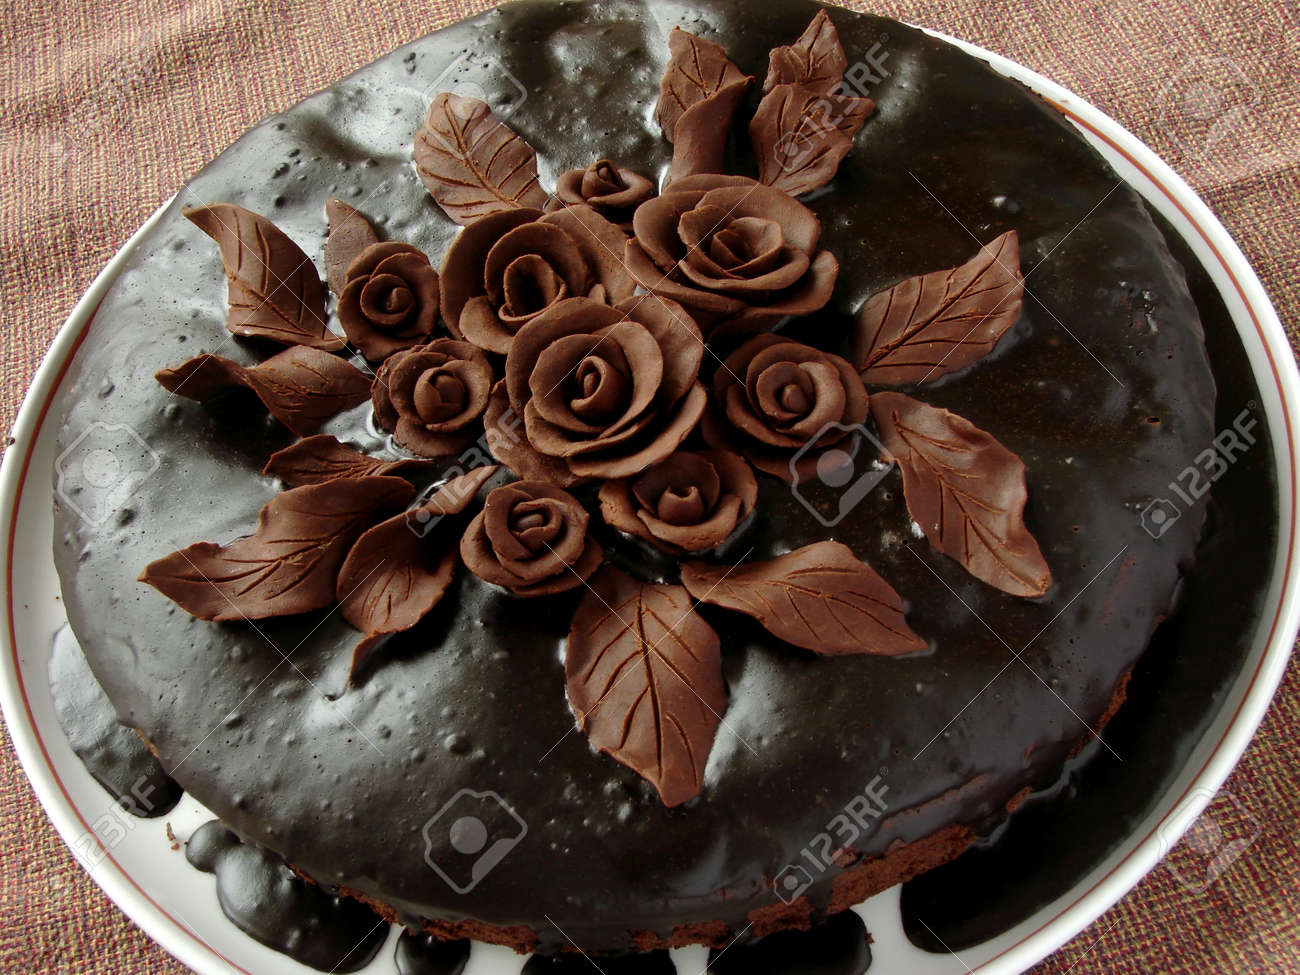 Homemade Glazed Cake Decorated With Chocolate Roses And Leaves ...